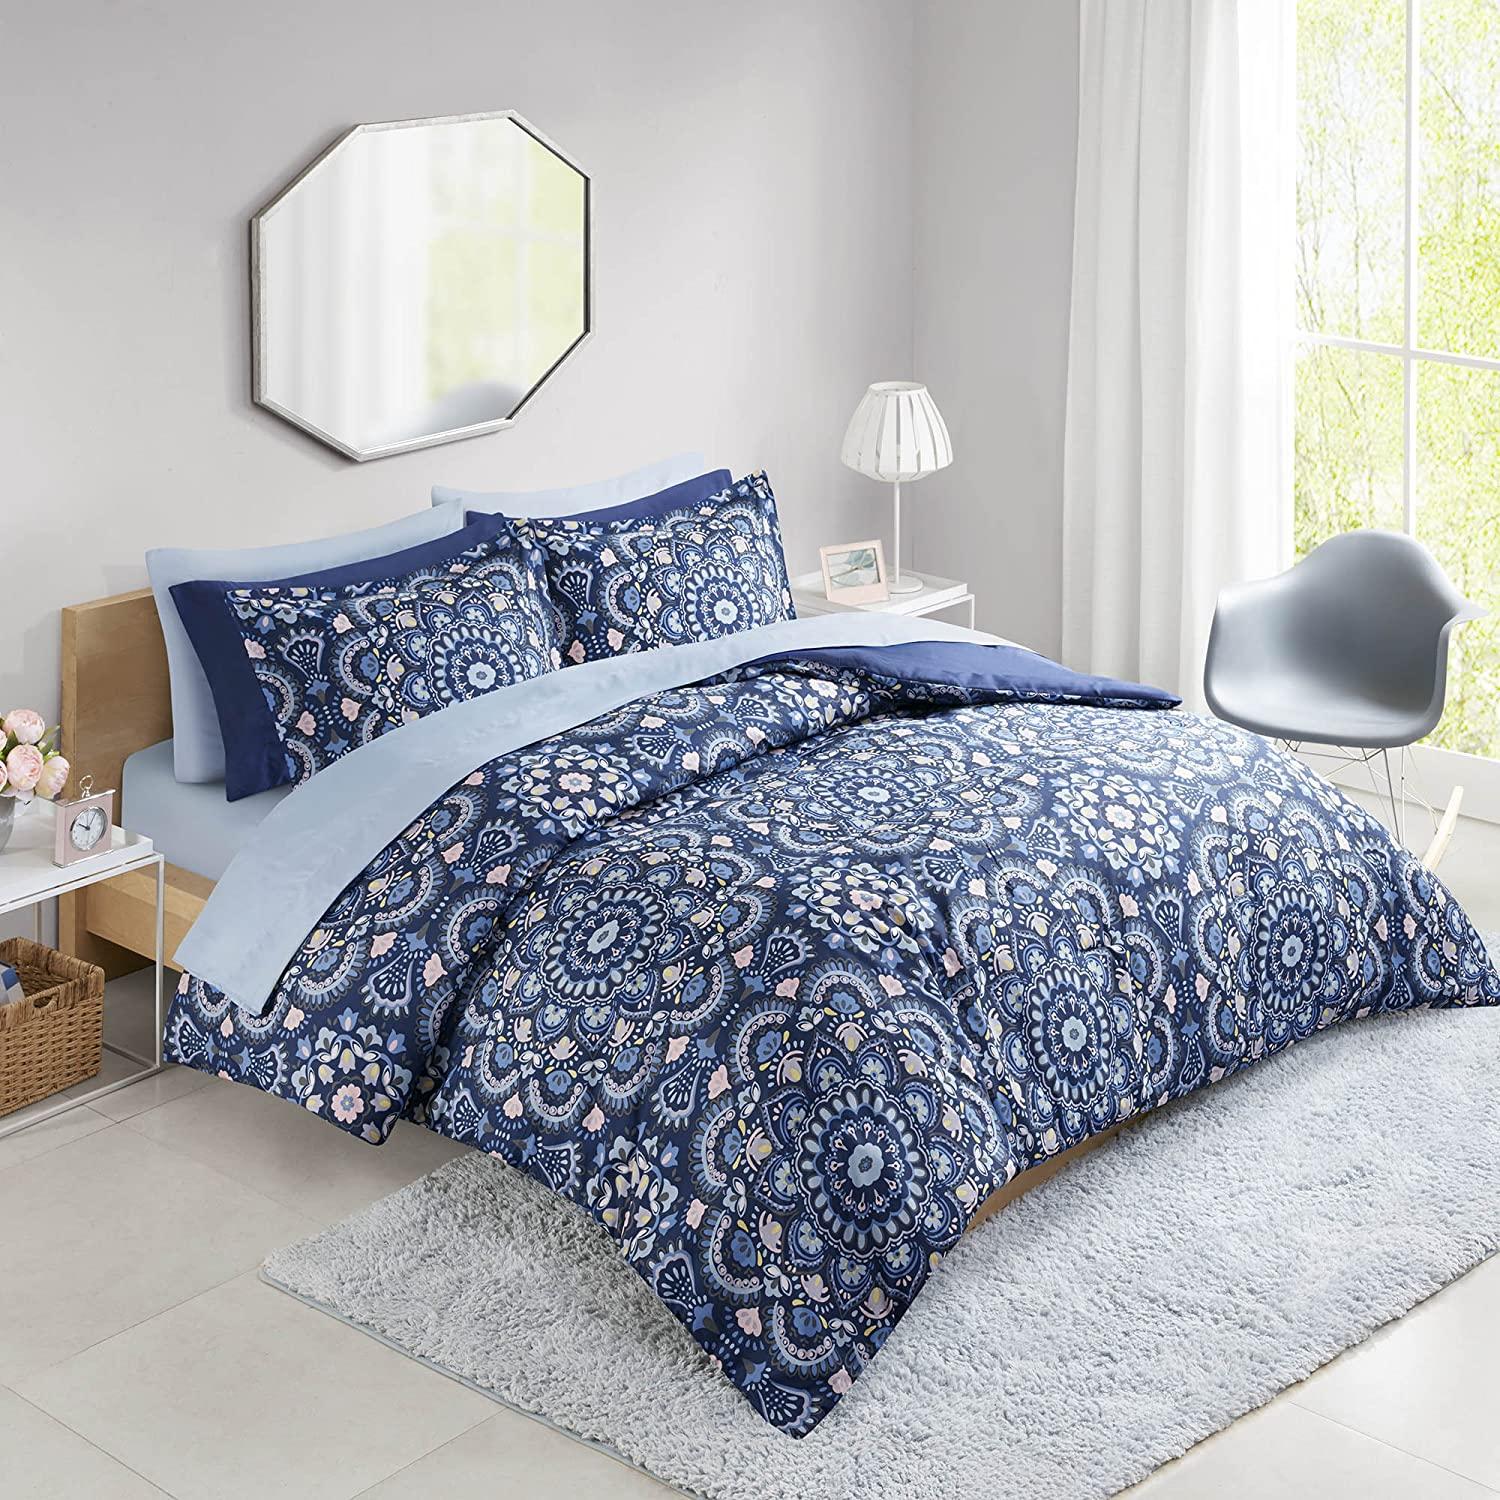 Comfort Spaces Cara 6 Piece Comforter Set All Season Microfiber Printed Medallion Bedding and Sheet with Two Side Pockets, Twin, Blue